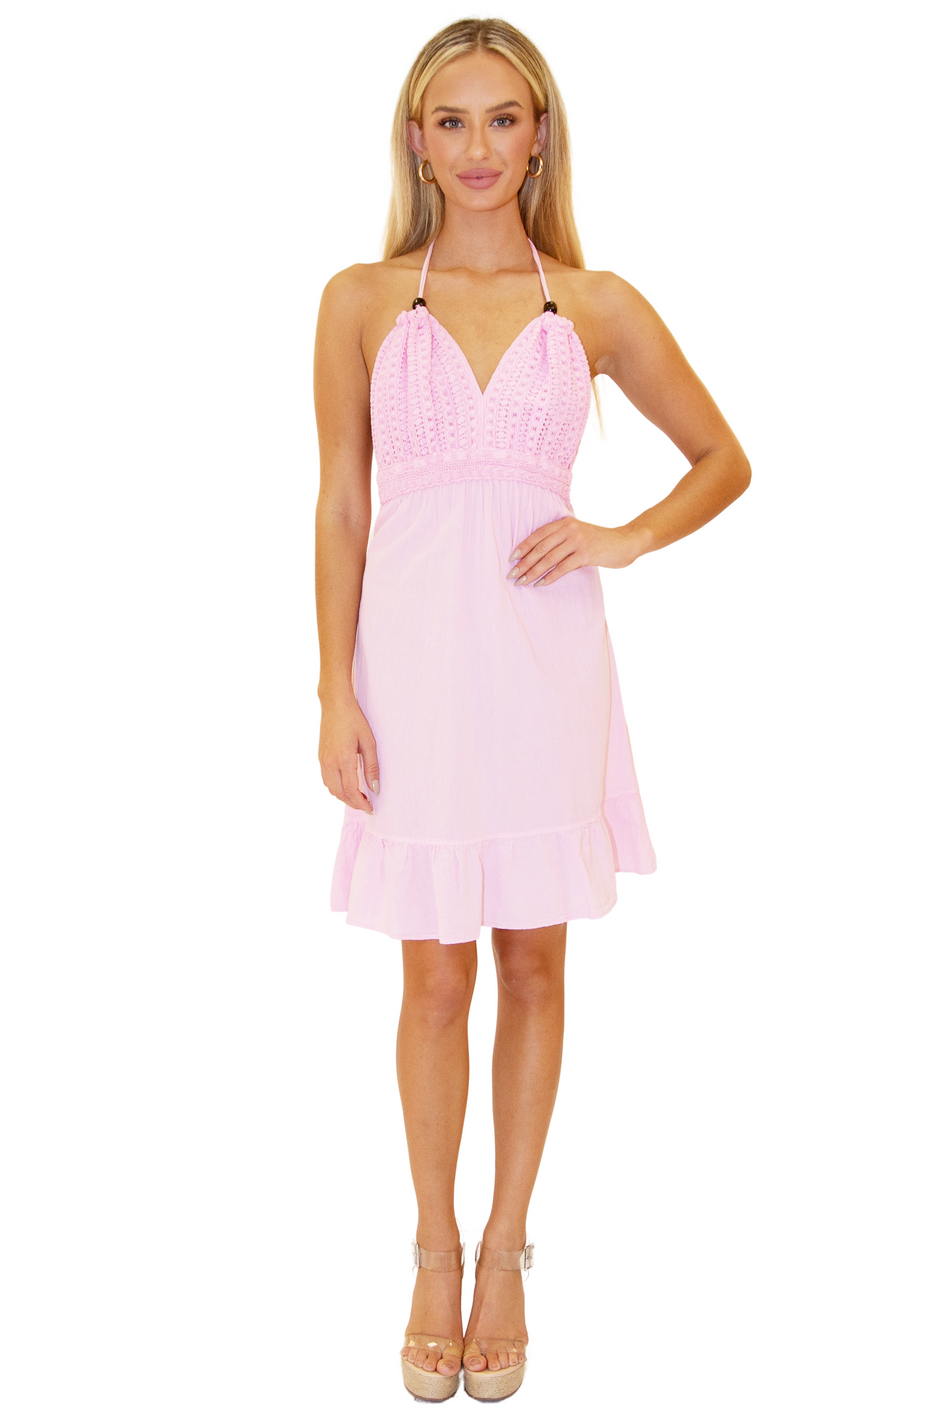 NW1020 - Pink Cotton Dress